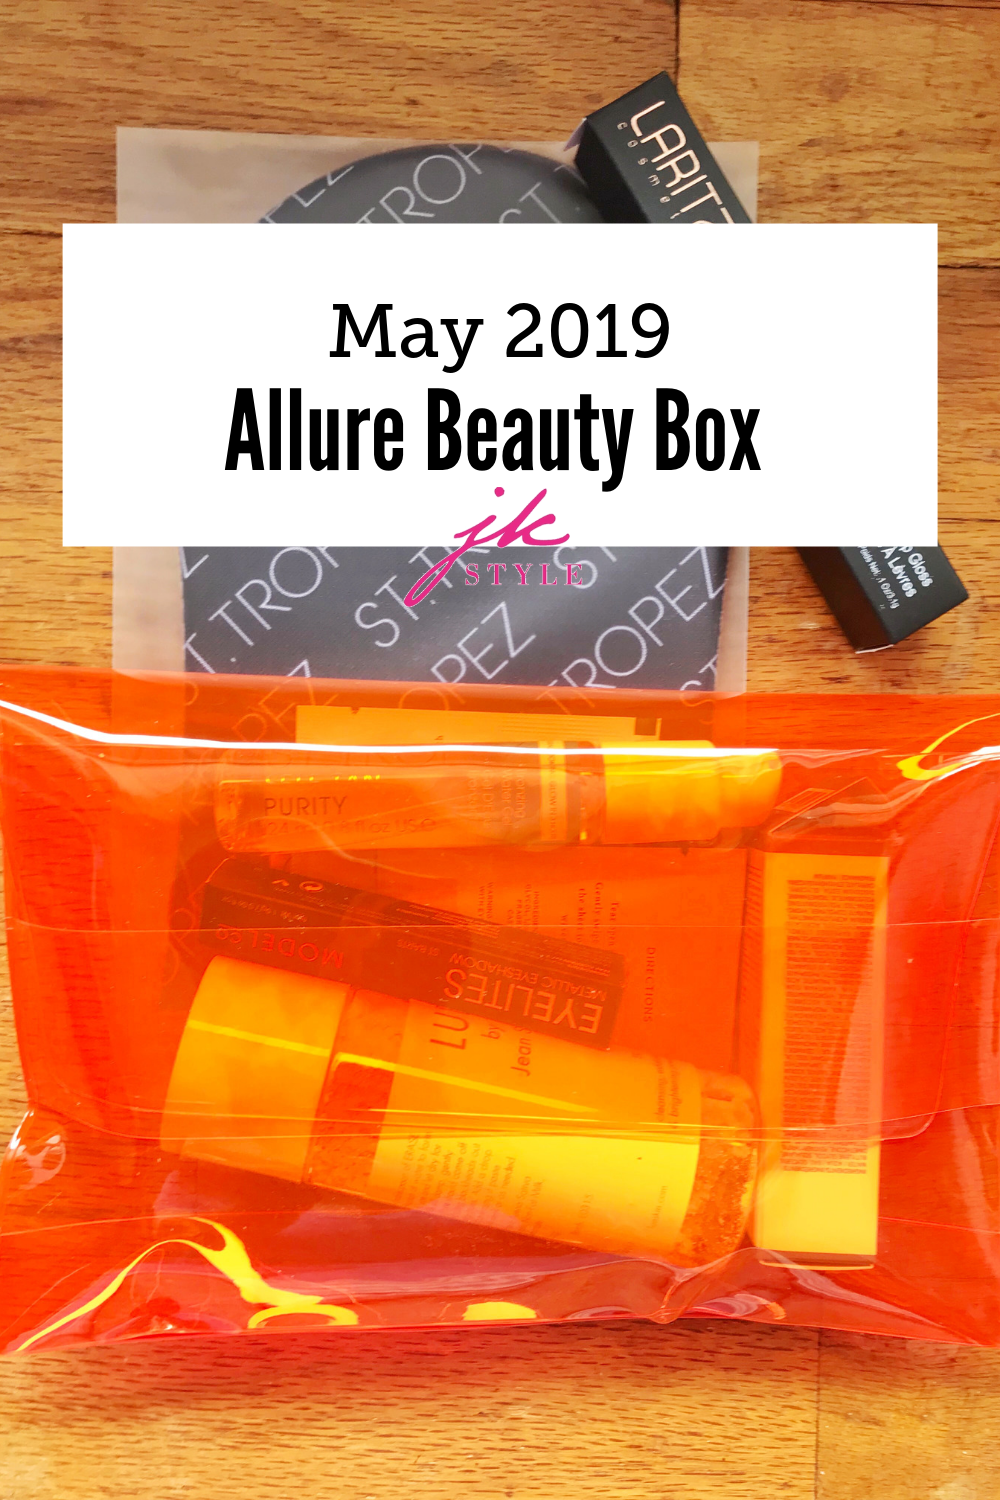 May Allure Beauty Box 2019 - JK Style